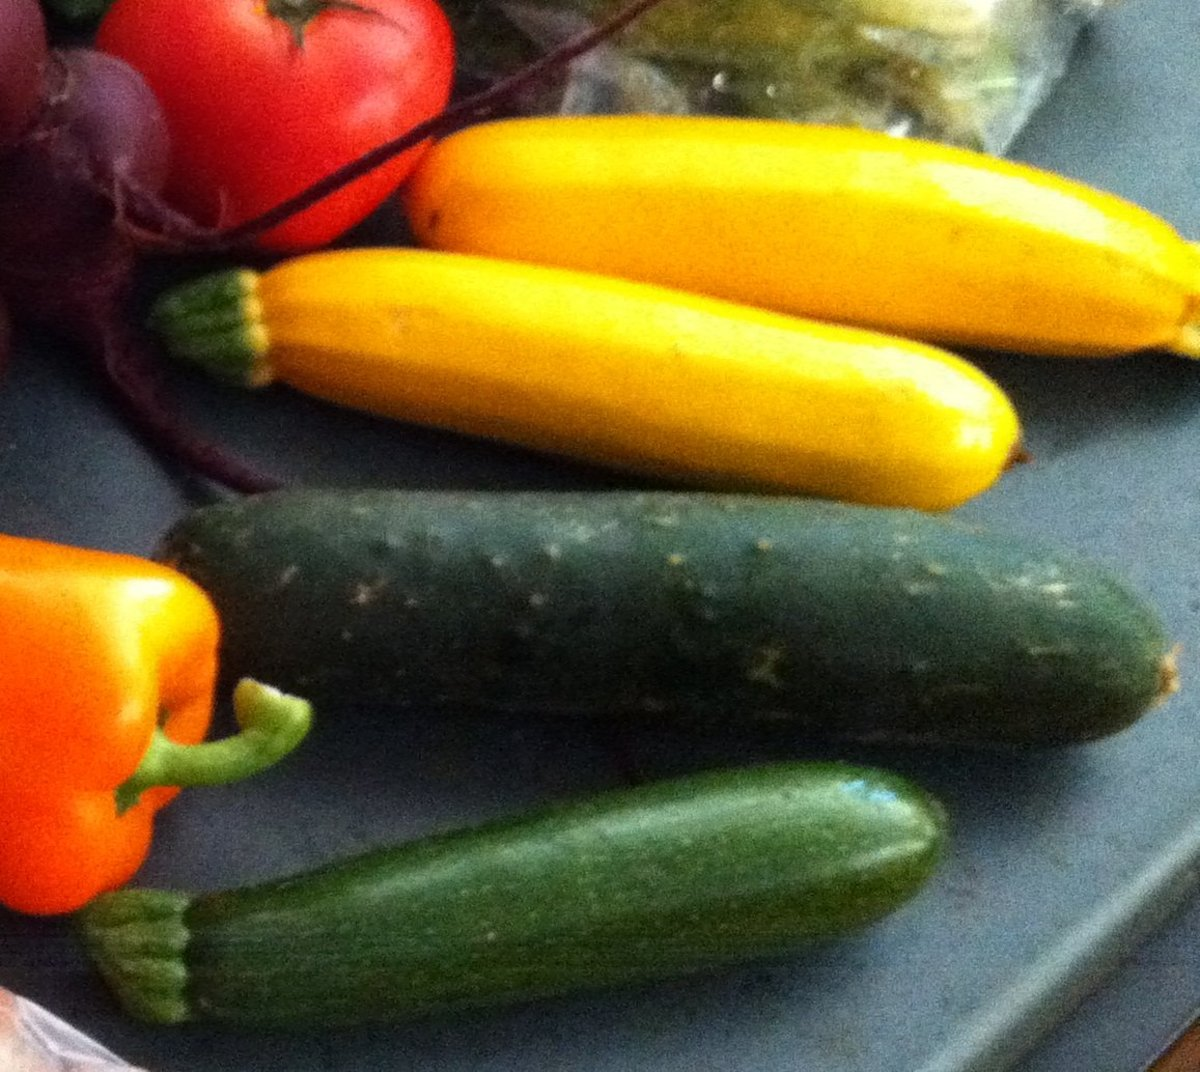 10 Things to Do With Extra Zucchini From Your Garden